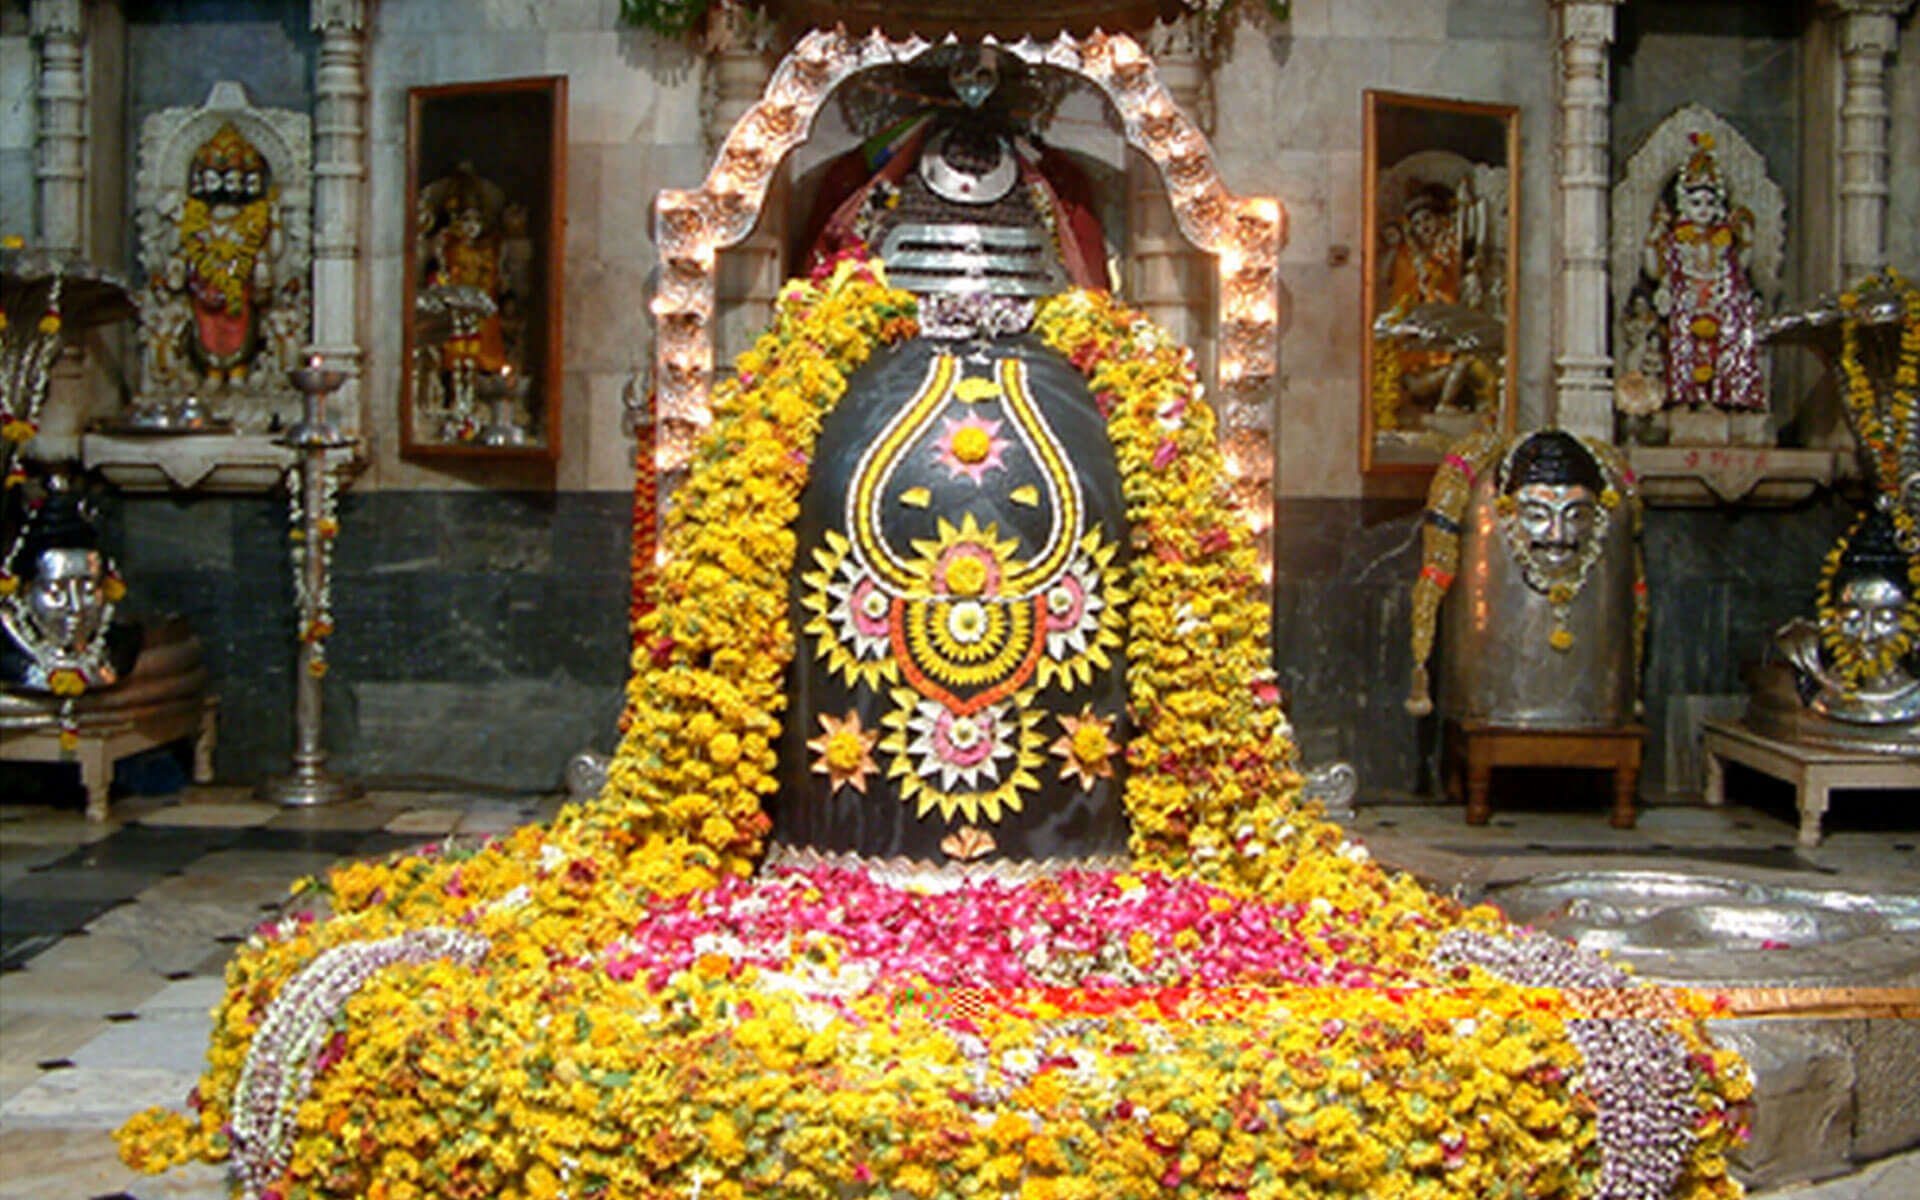 black shivling covered by yellow flowers